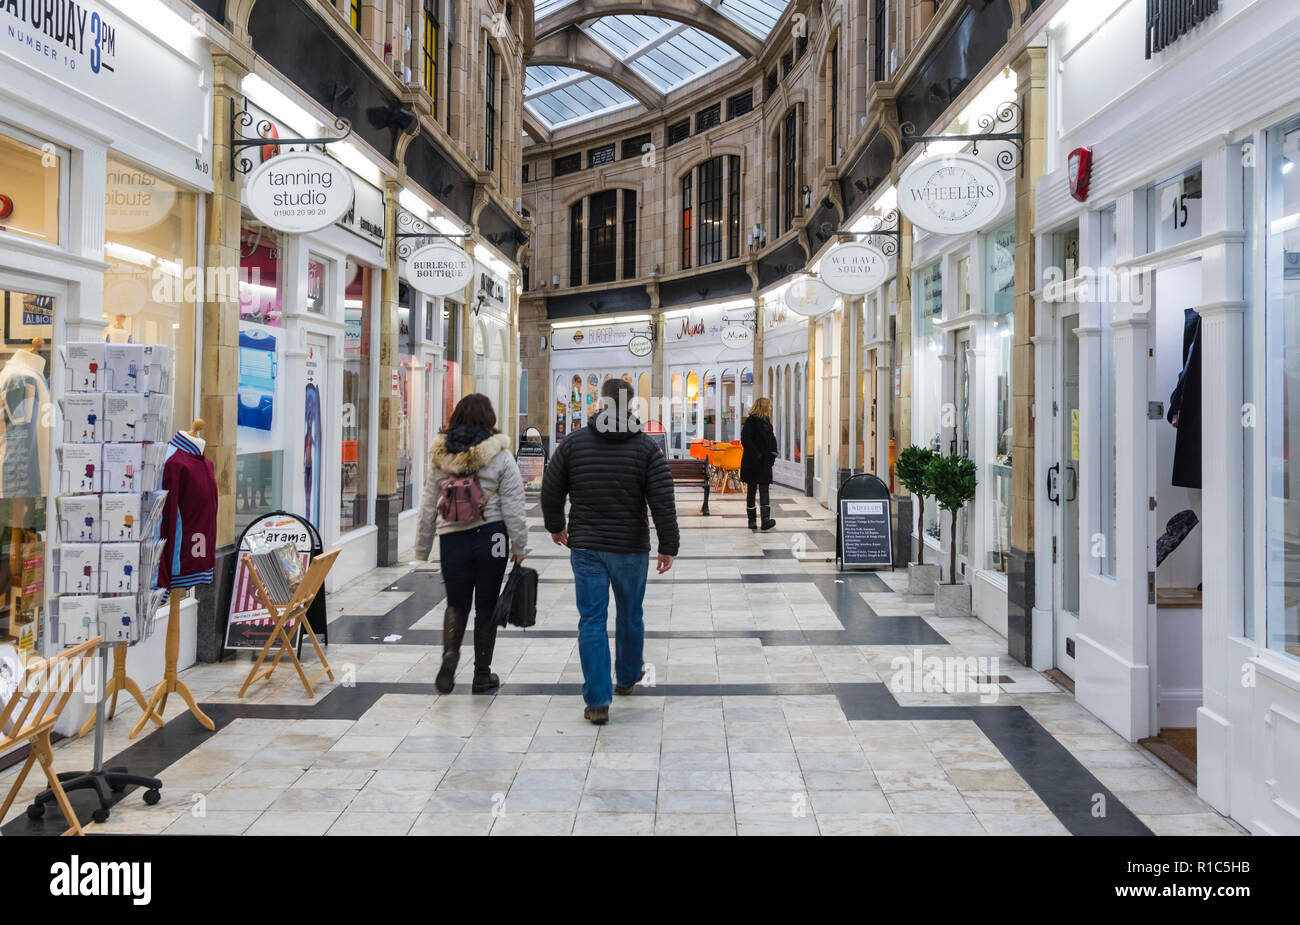 People walking through the Royal Arcade Shopping Centre, a small shopping mall in Worthing, West Sussex, England, UK. - Stock Image